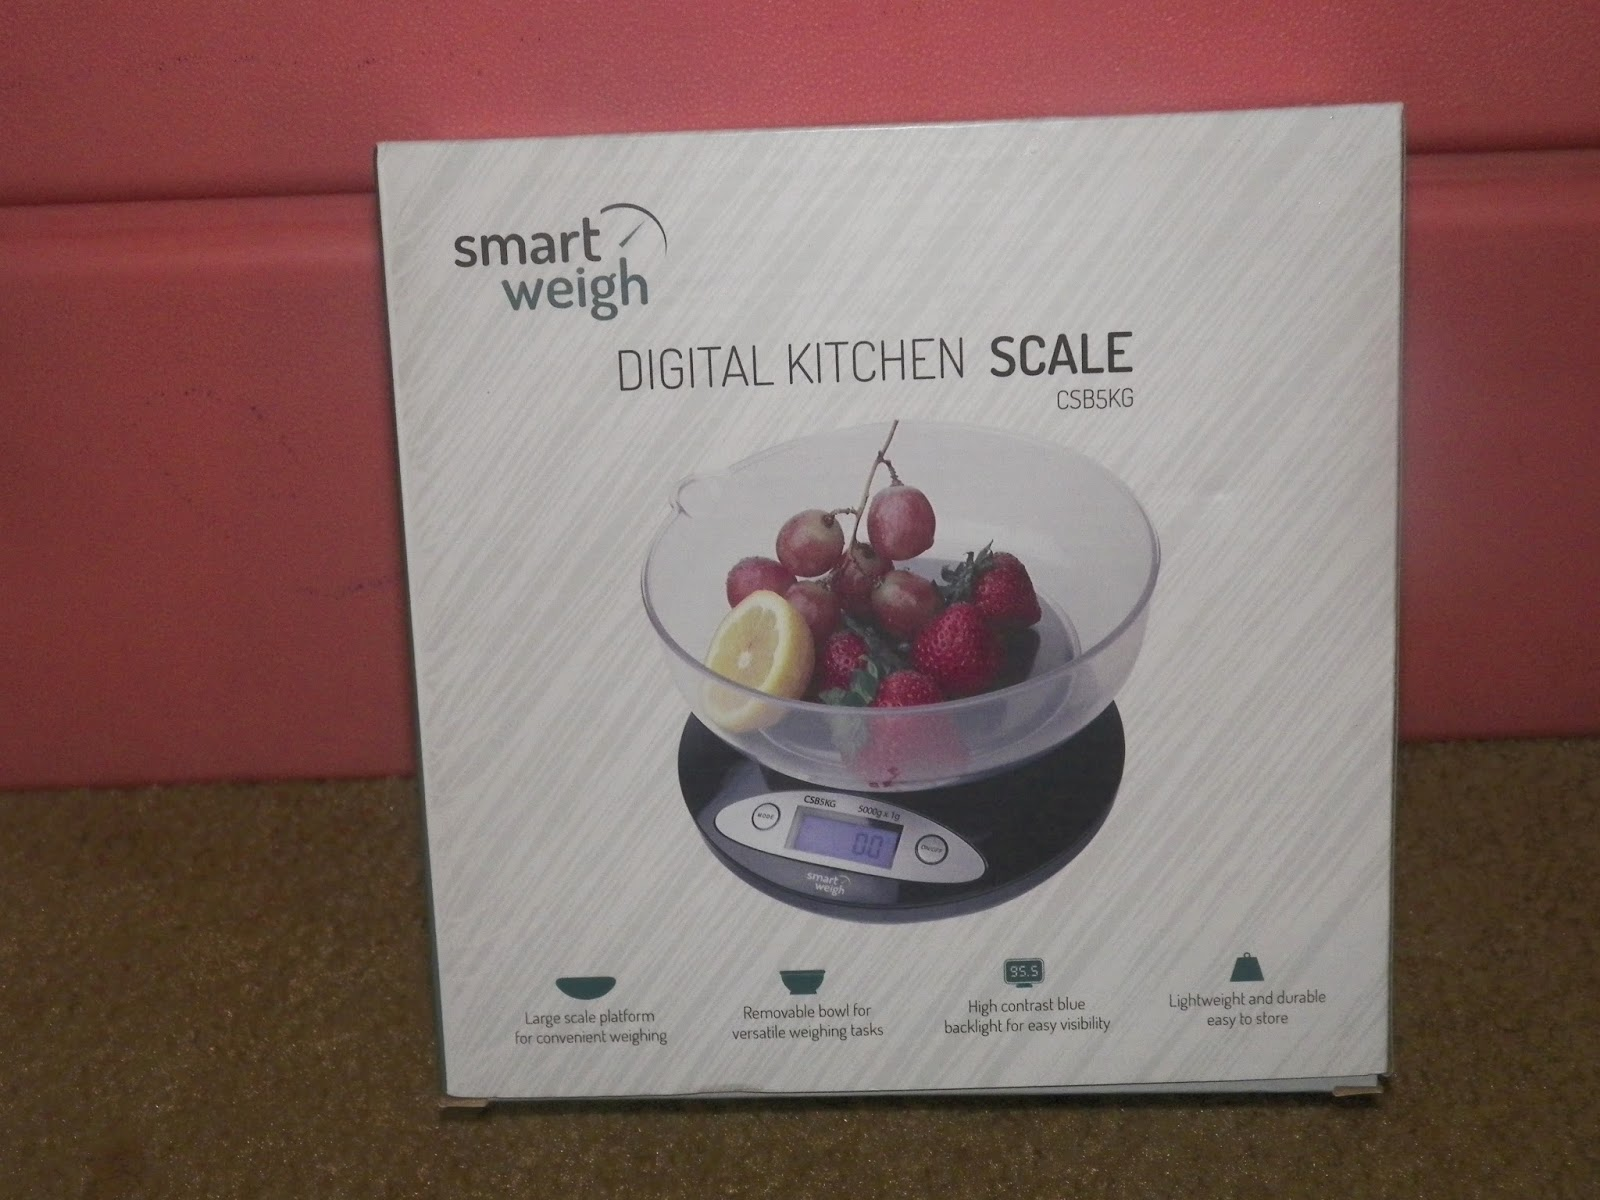 SmartWeighPrecisionDigitalKitchenScale.jpg